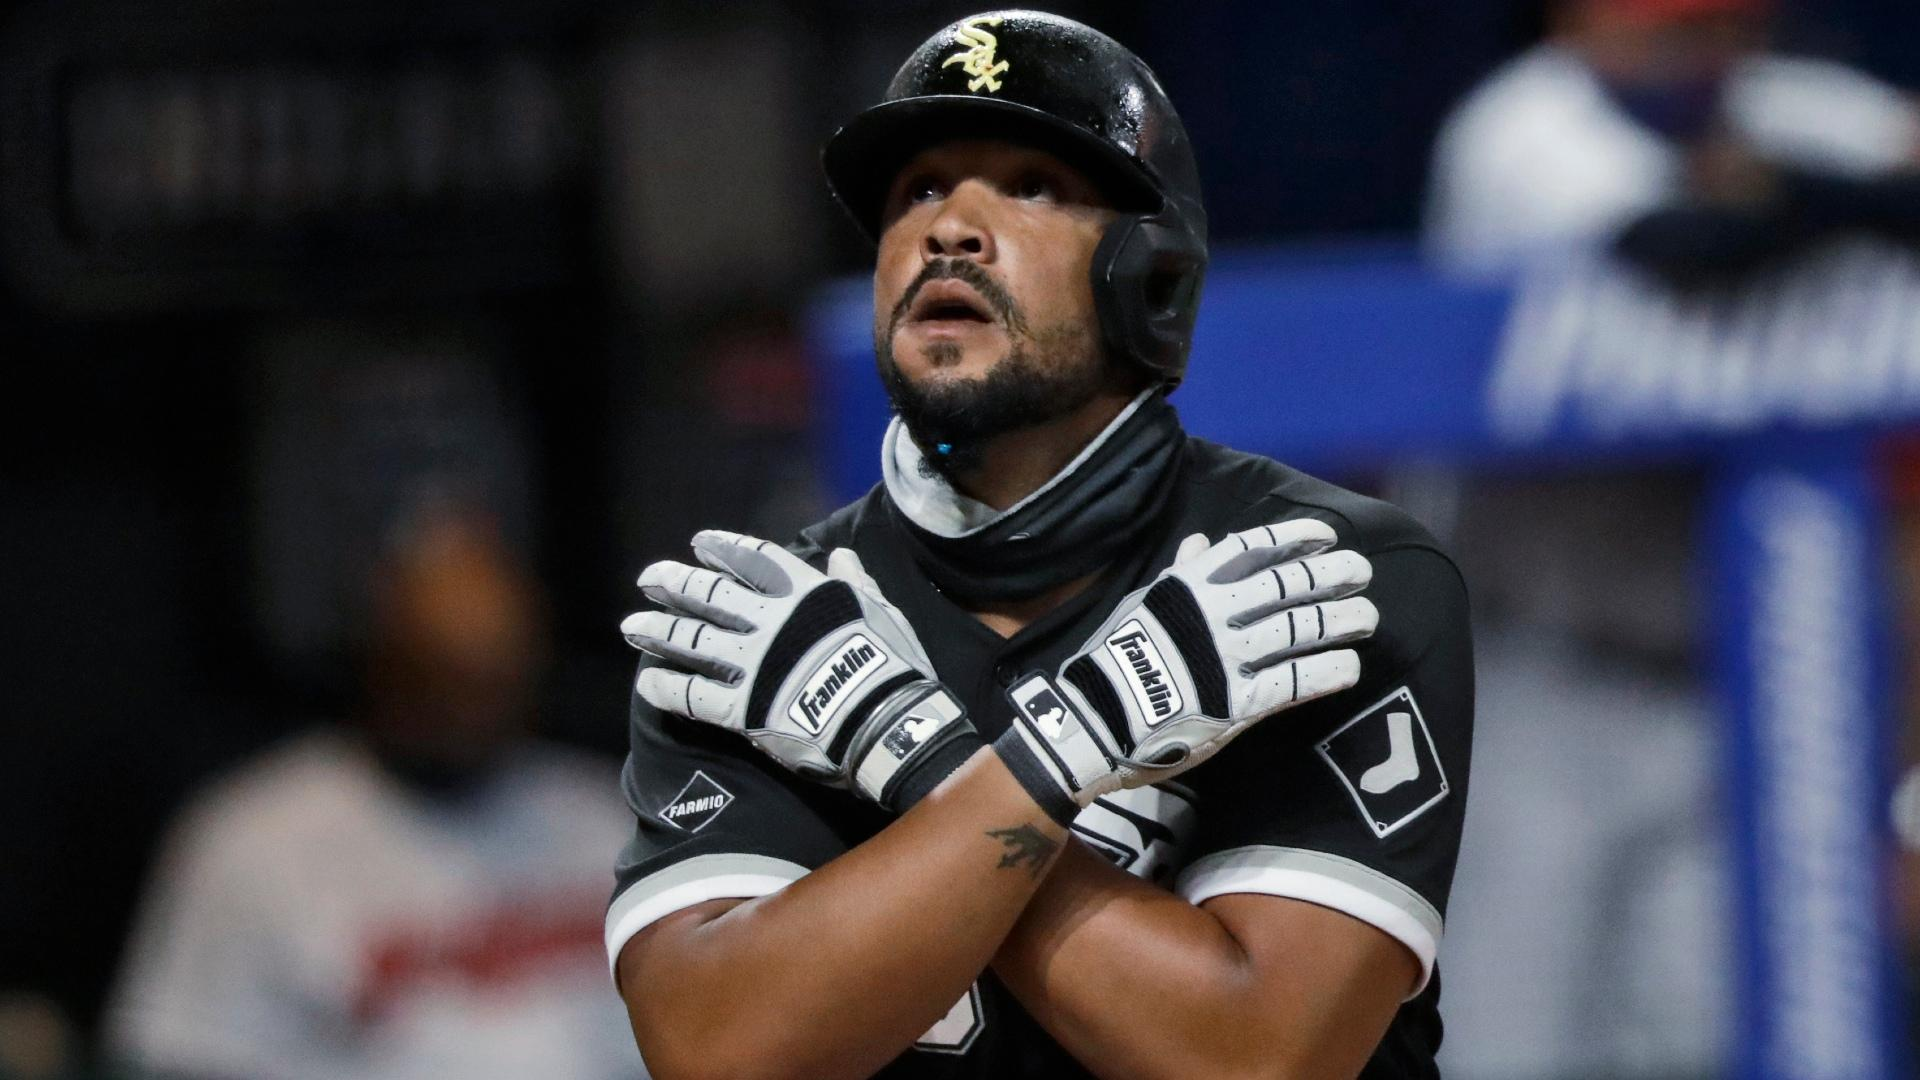 In this July 28, 2020, file photo, Chicago White Sox's Jose Abreu looks up after hitting a solo home run in the sixth inning in the second baseball game of the team's doubleheader against the Cleveland Indians in Cleveland. (AP Photo / Tony Dejak, File)